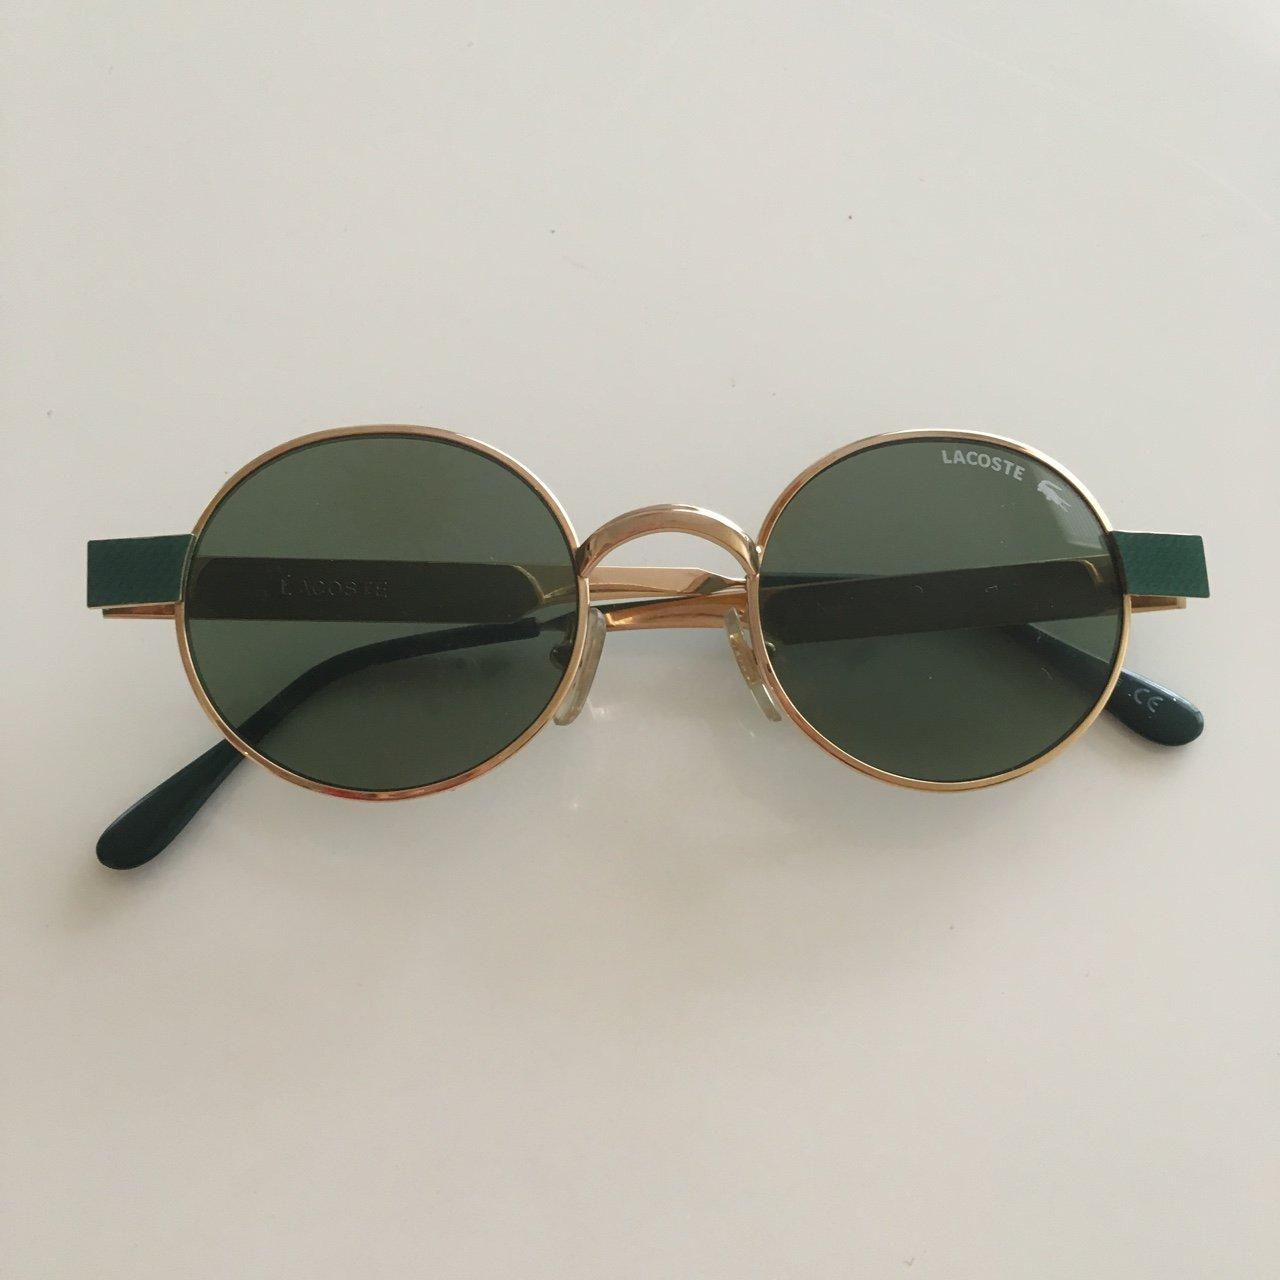 90c34edc7ec9 @faunholley. last year. Melbourne, United States. Incredible vintage 90s  oval Lacoste sunglasses made ...